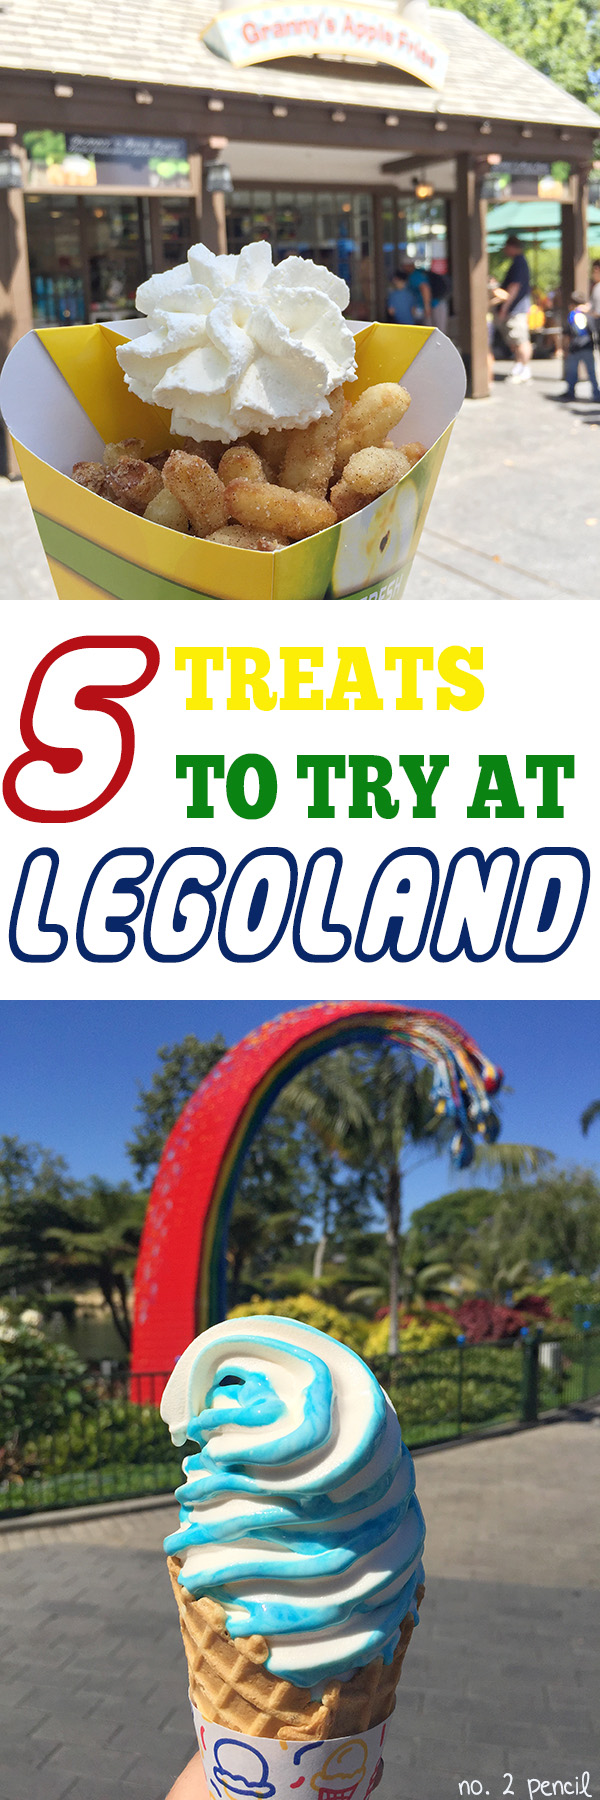 Top 5 Treats to Eat at Legoland